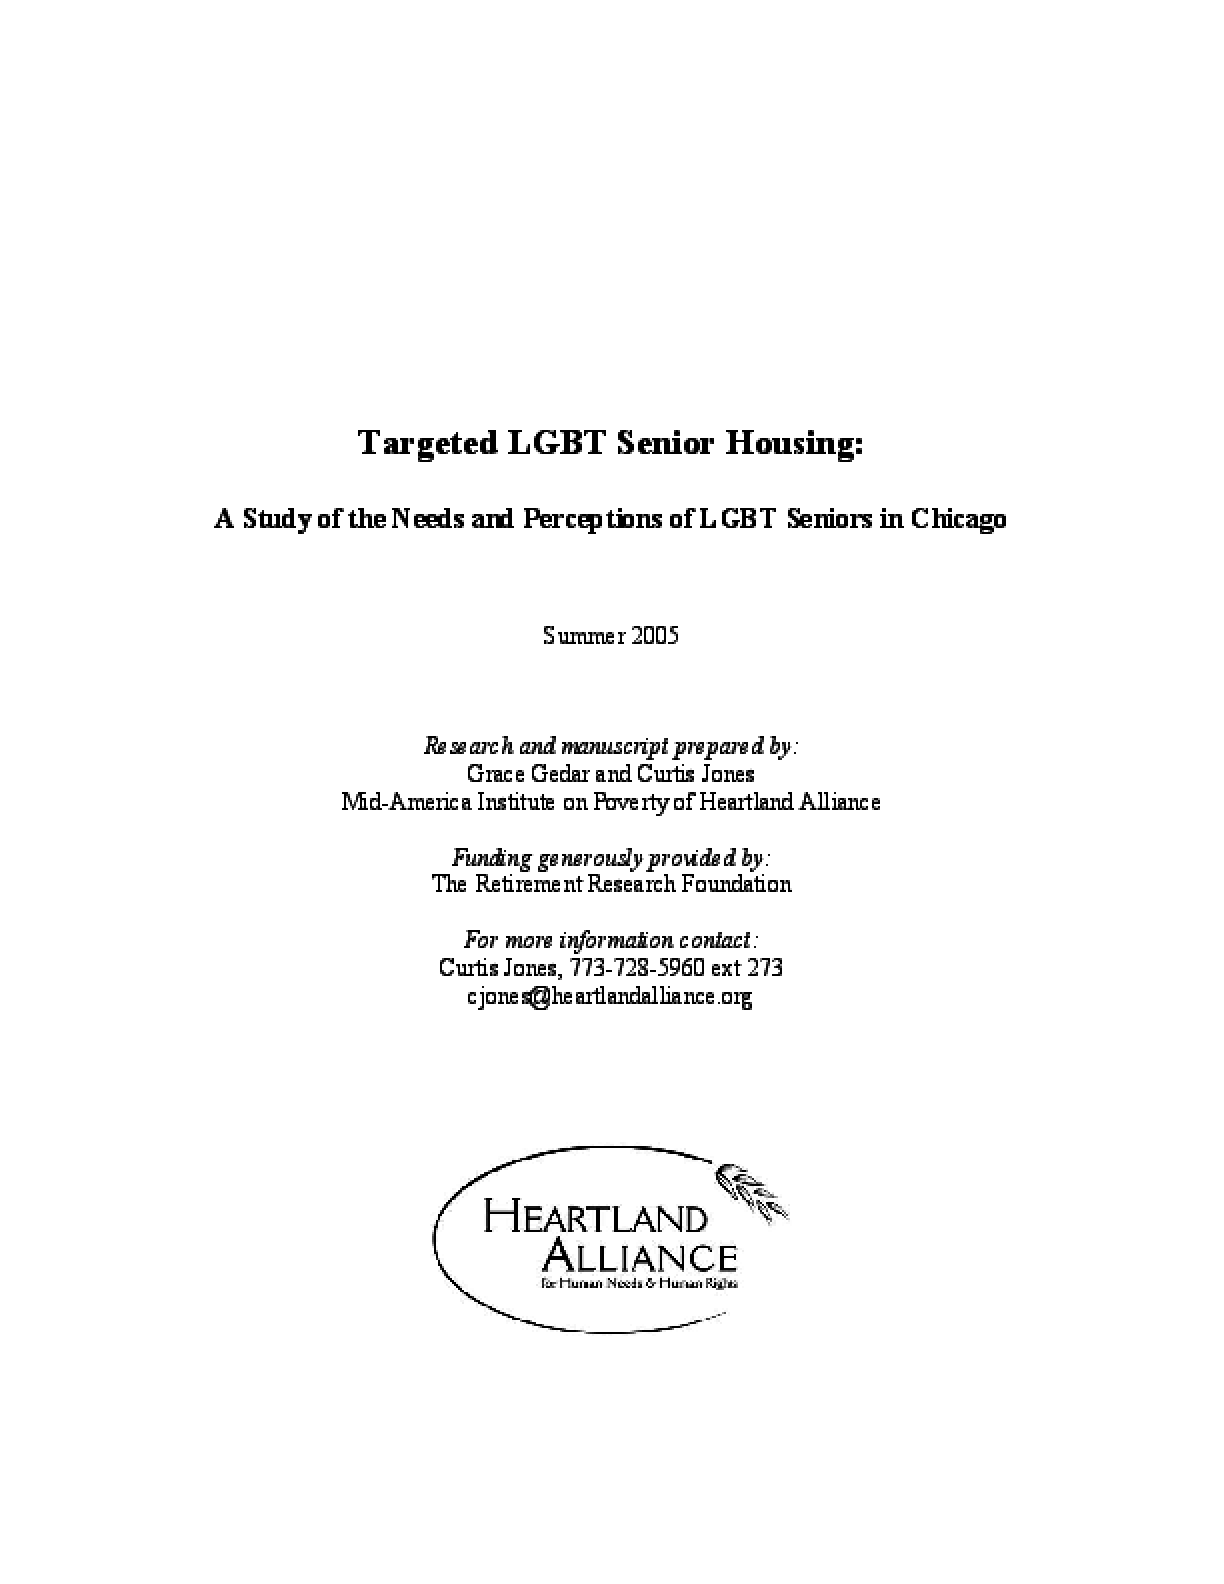 Targeted LGBT Senior Housing: A Study of the Needs and Perceptions of LGBT Seniors in Chicago